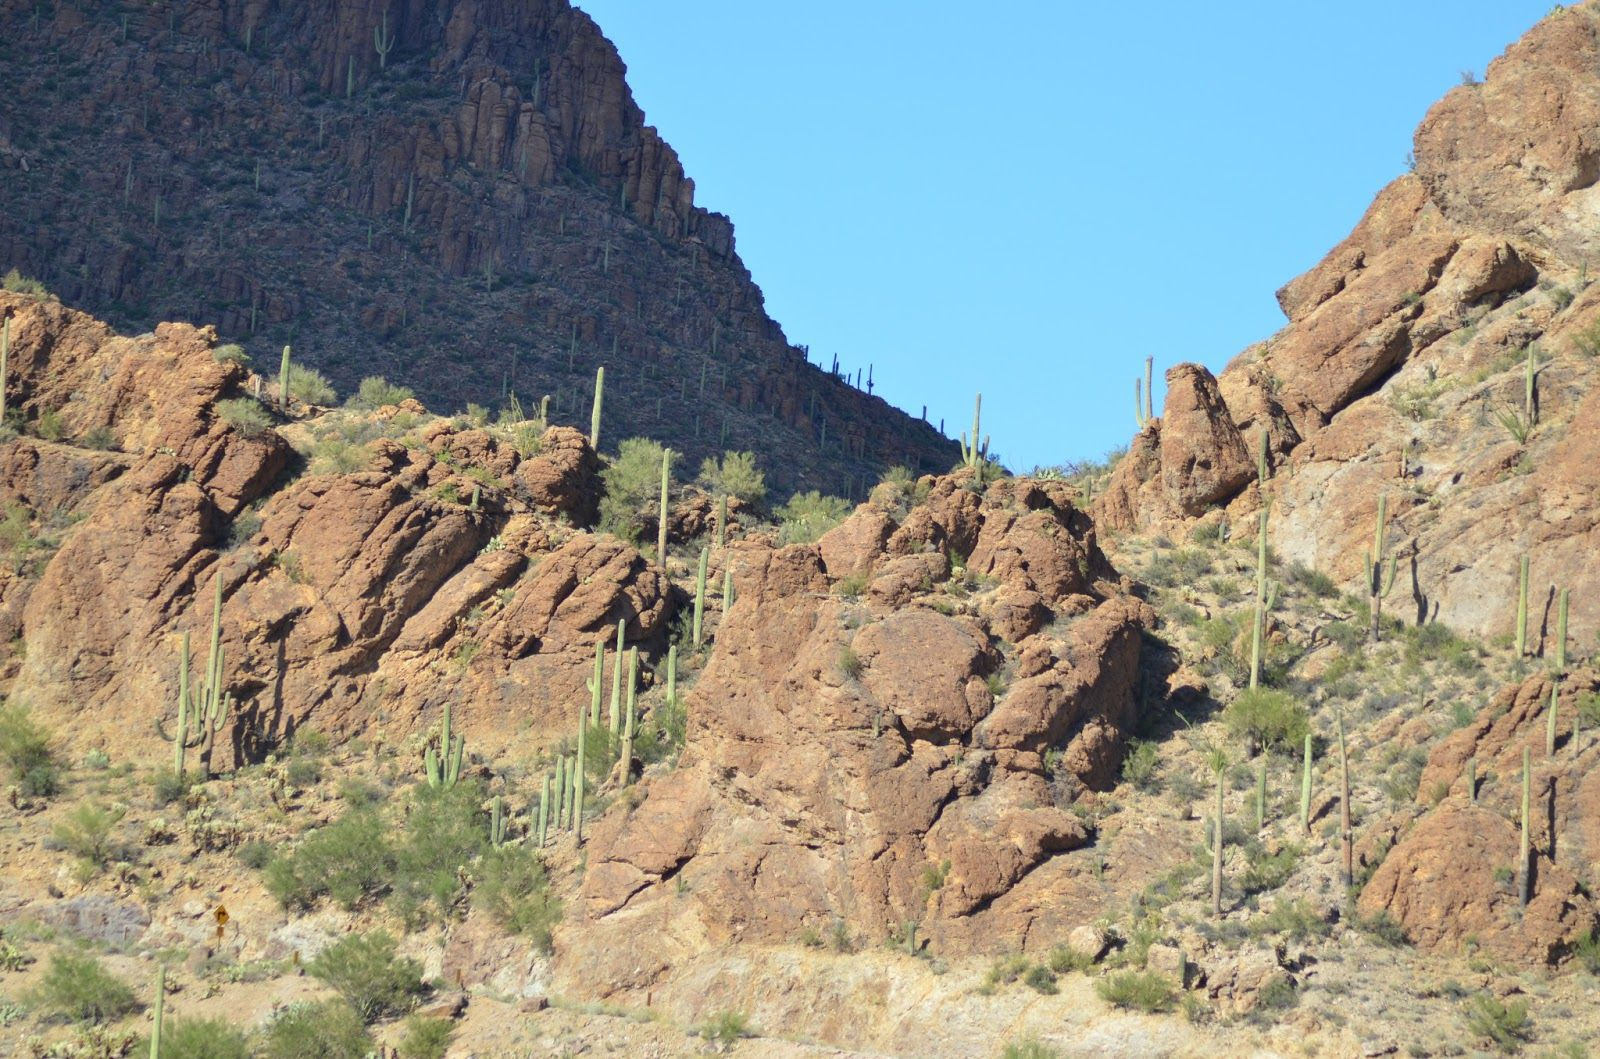 One of my favorite spots in the Tucson Mountains, Gates Pass road, which I used to take home from work.